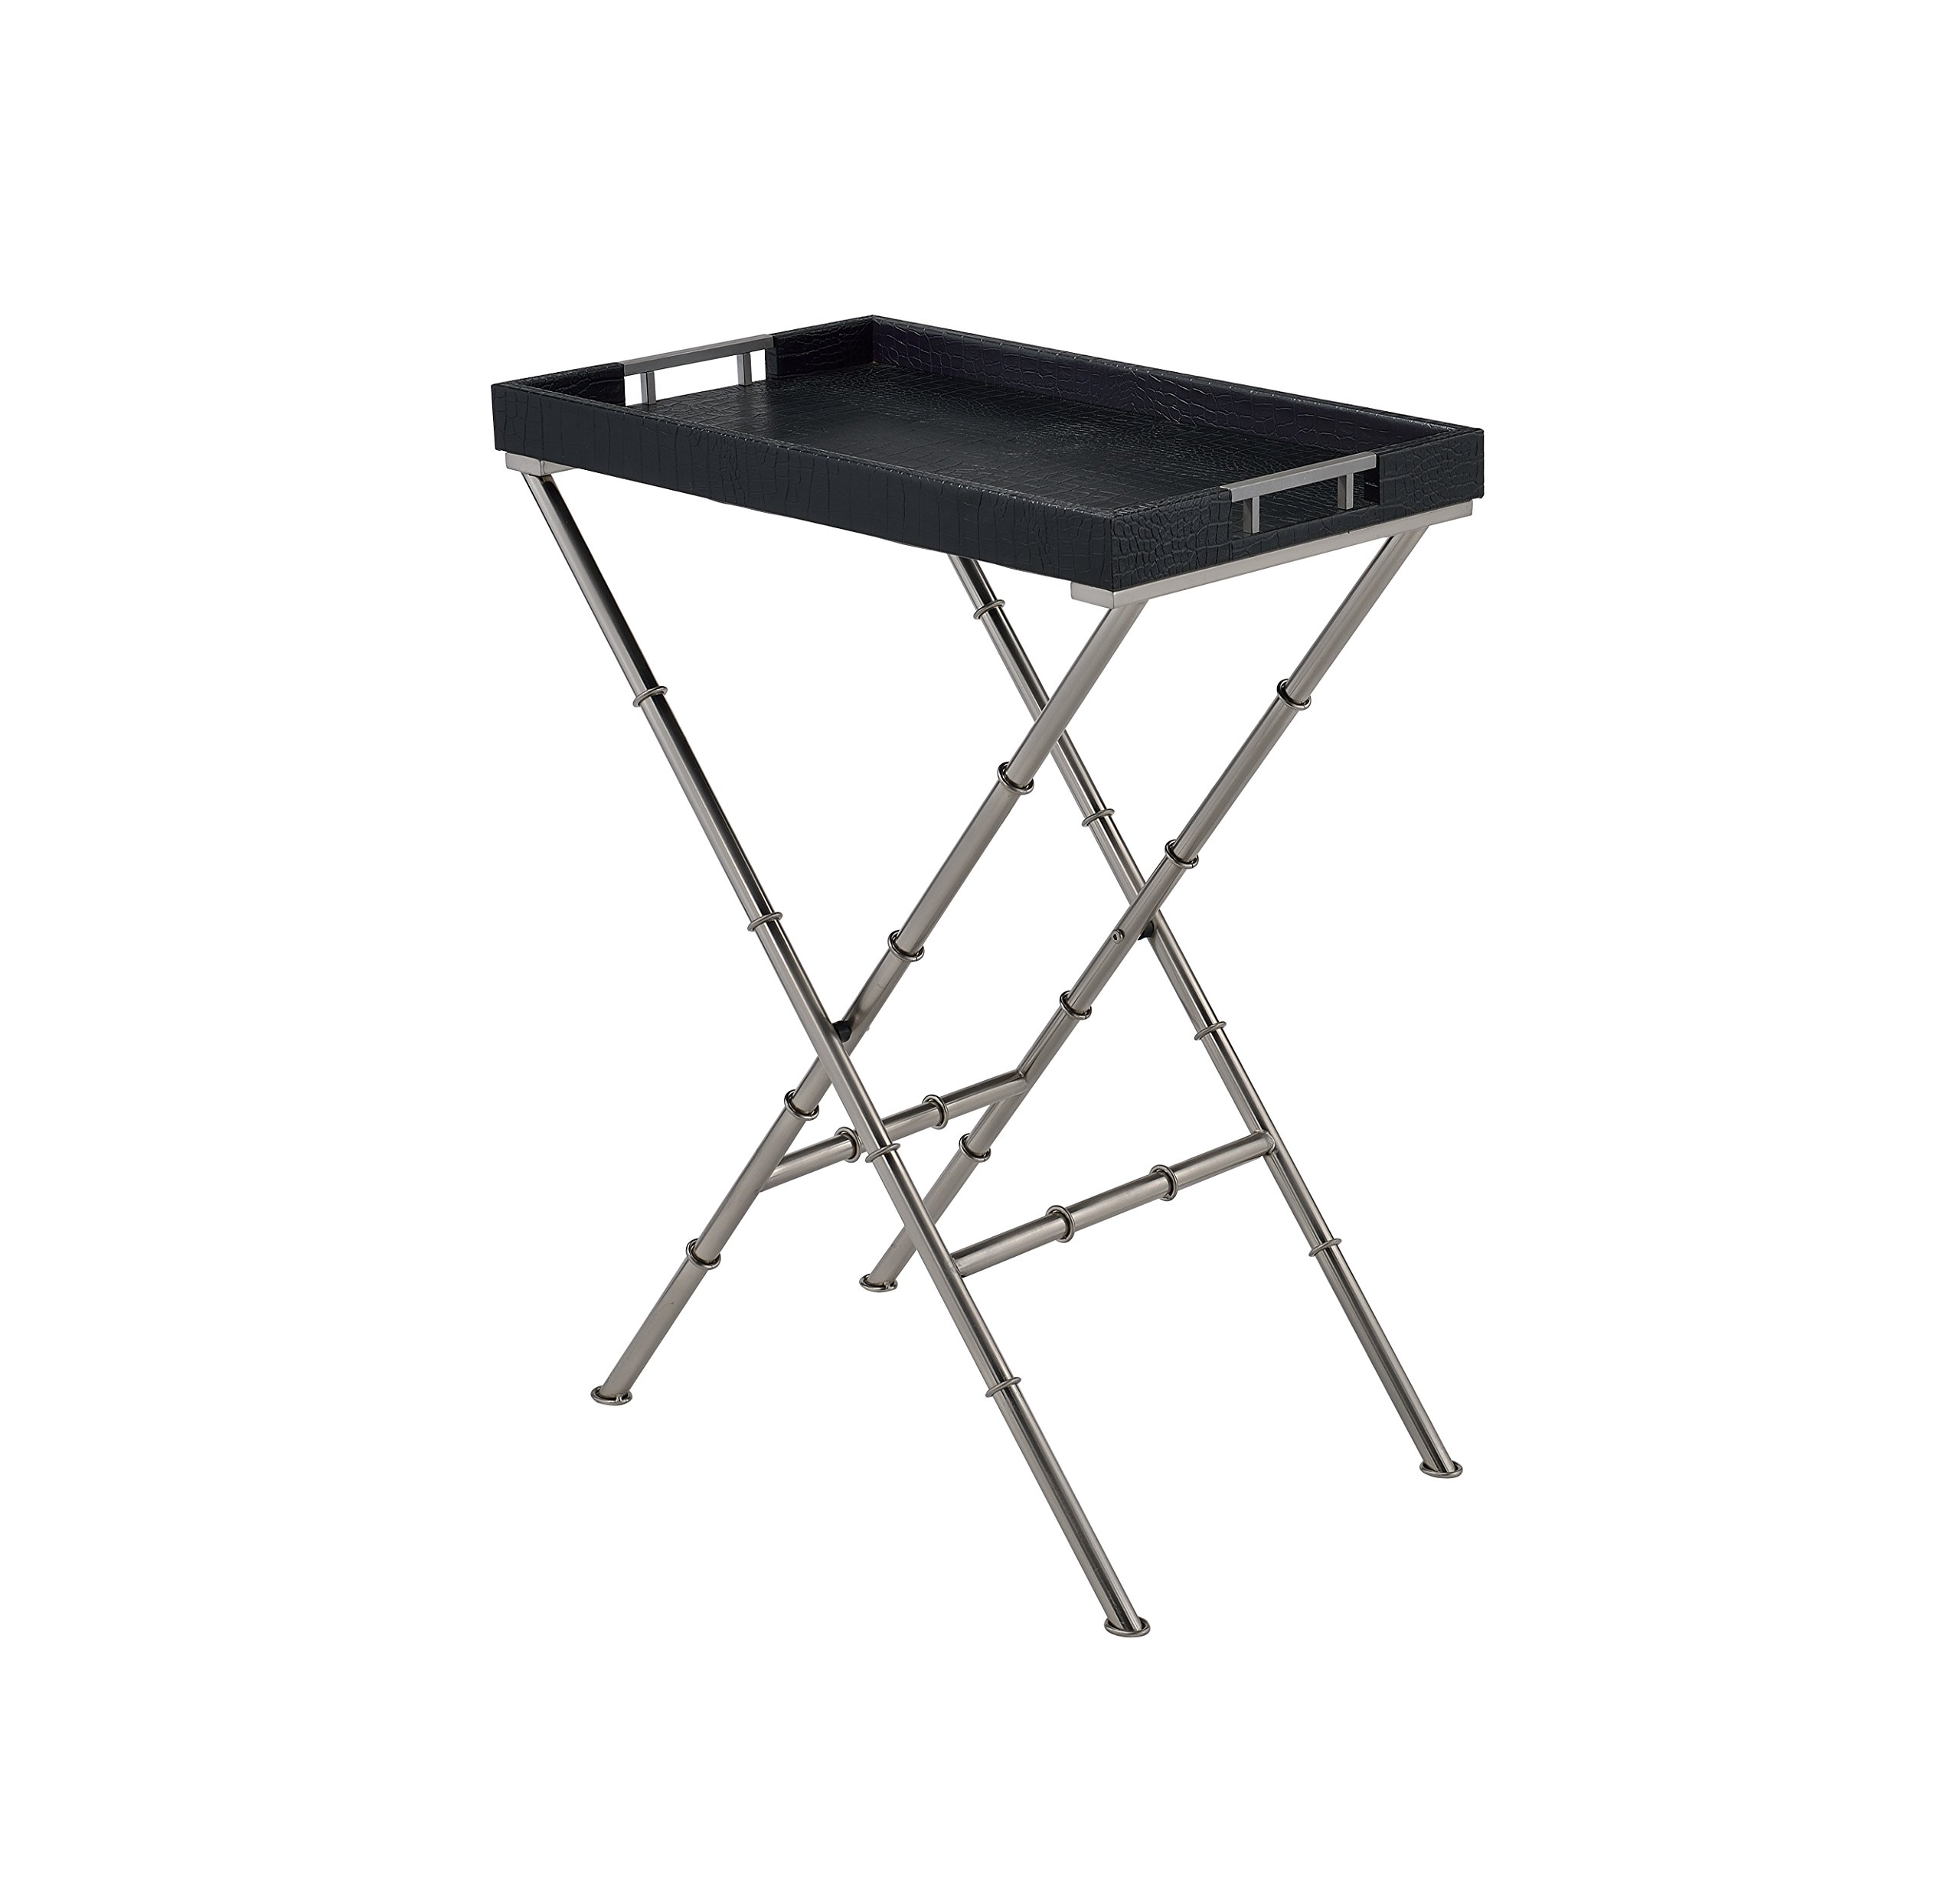 ComfortScape Portable Antique Tray Table for Serving Snacks, Black Weave by ComfortScape